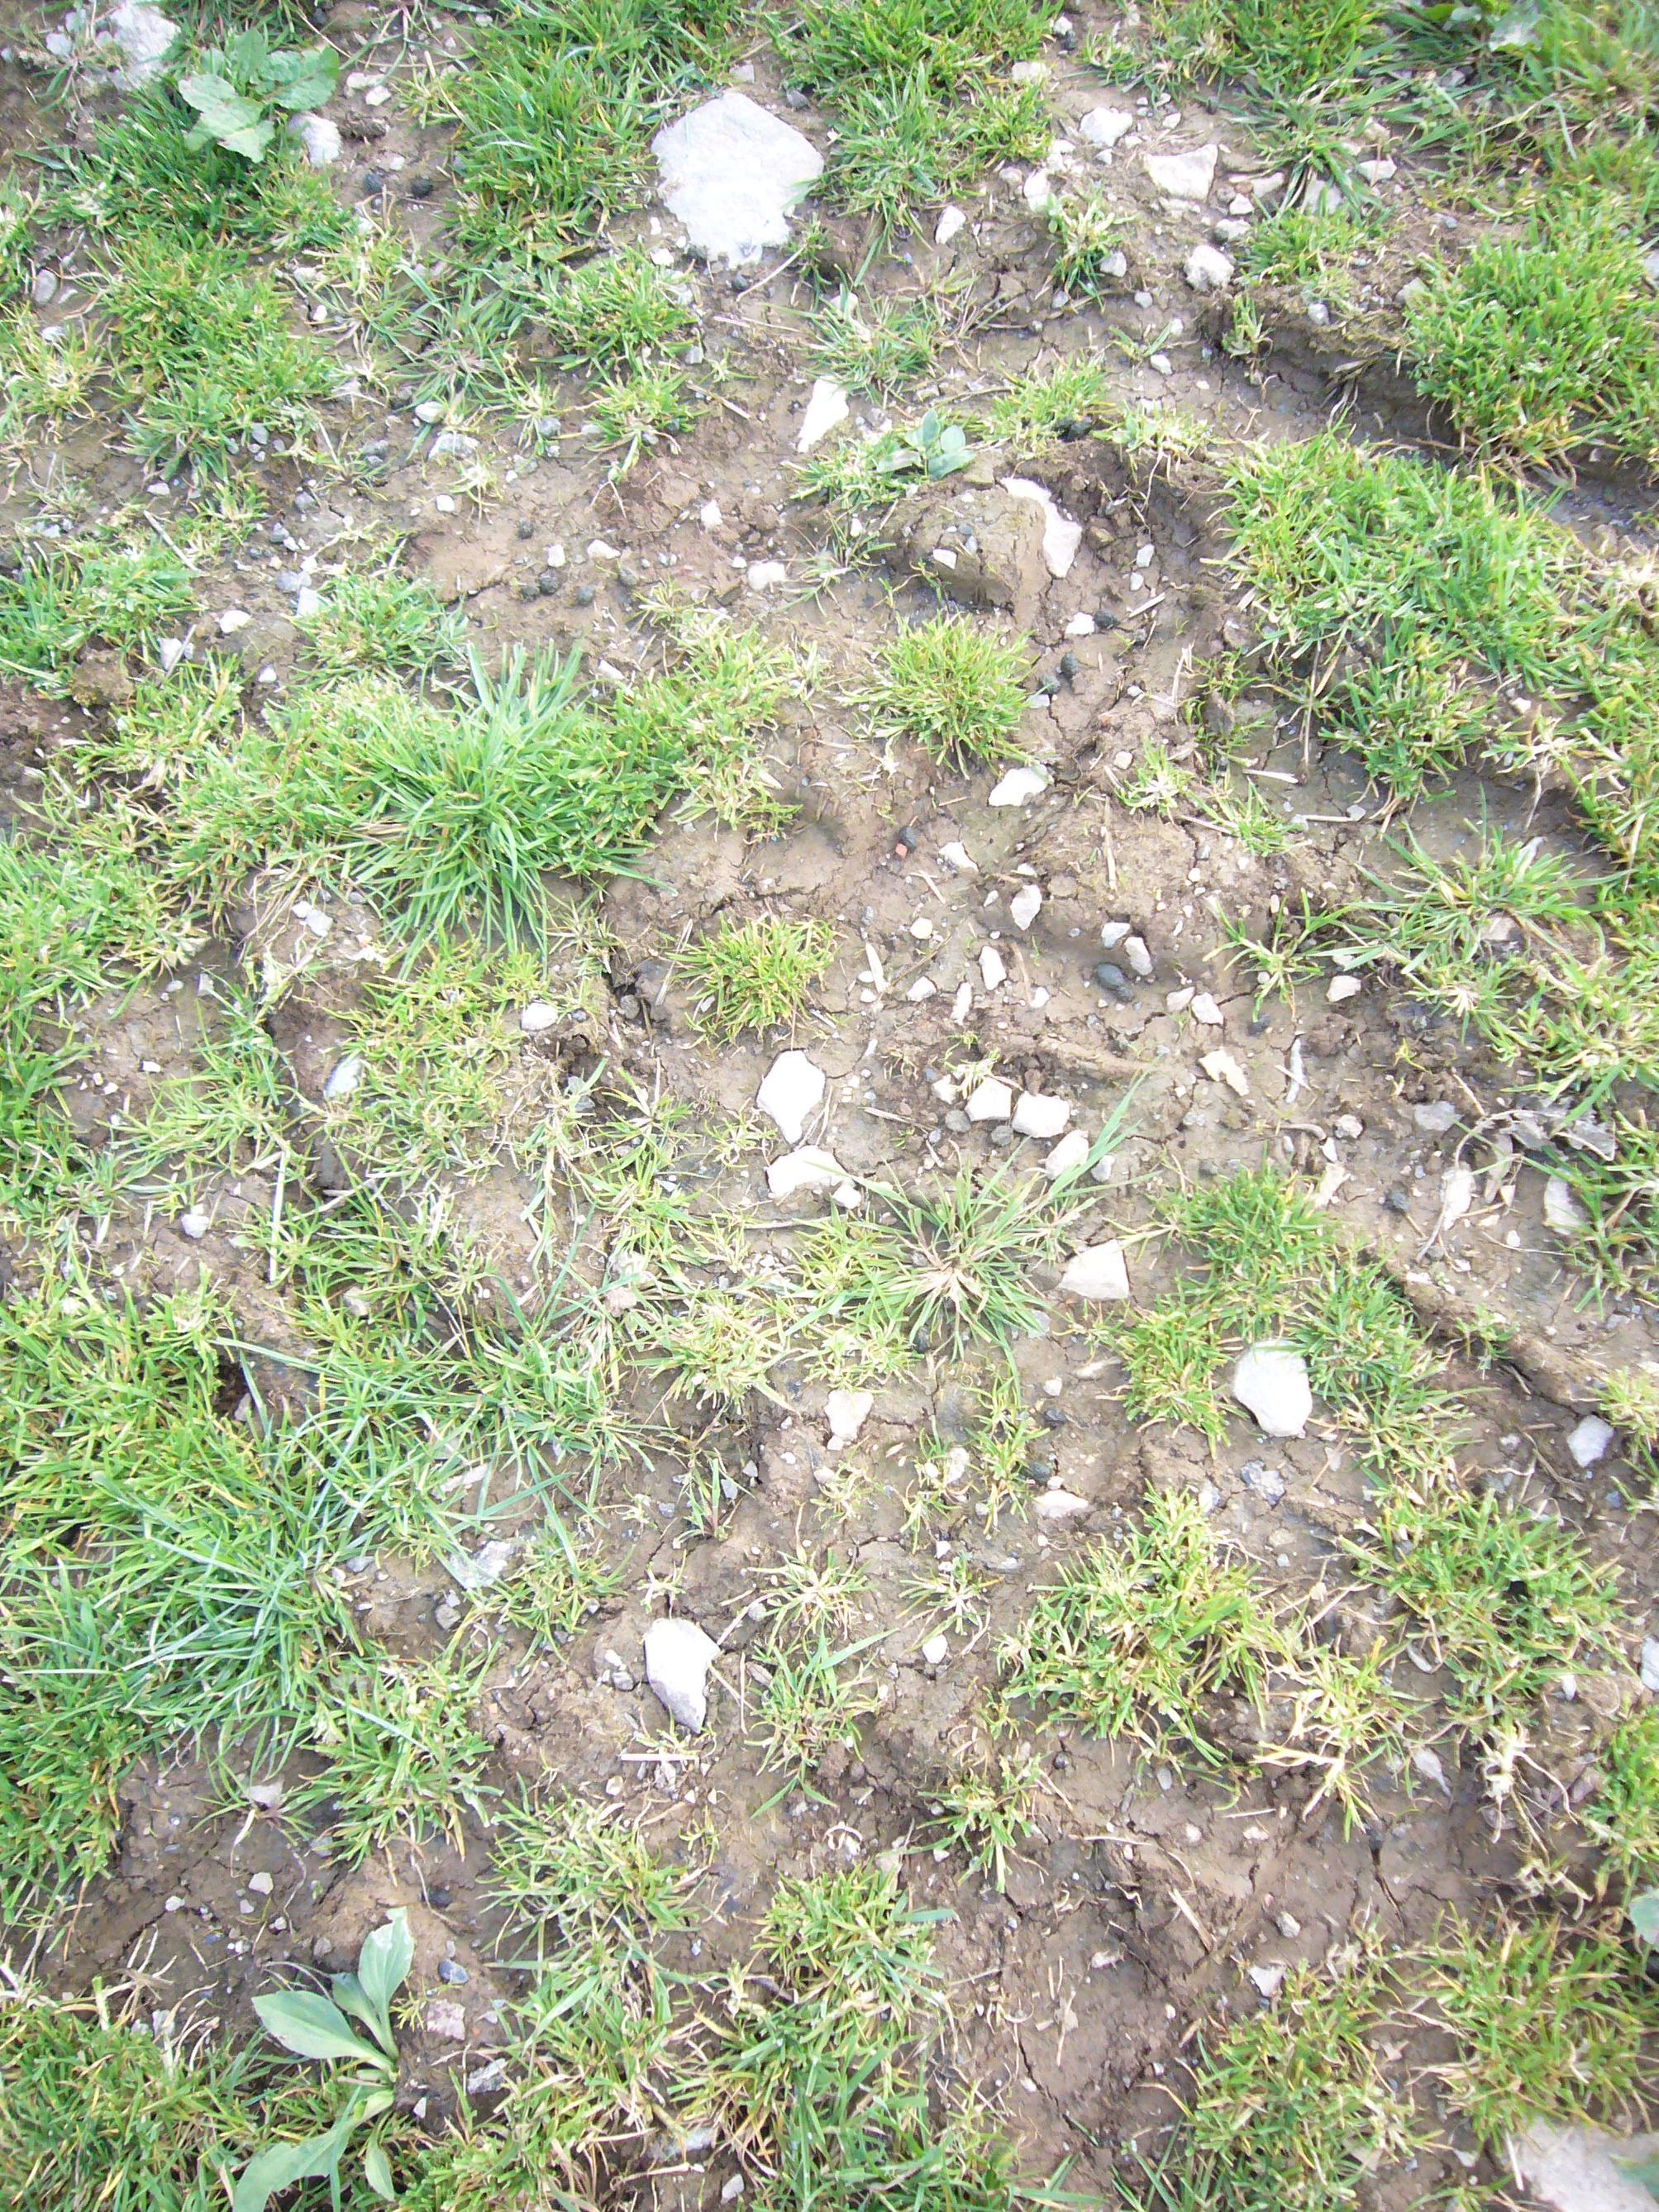 Compacted soil, with tractor tread evident